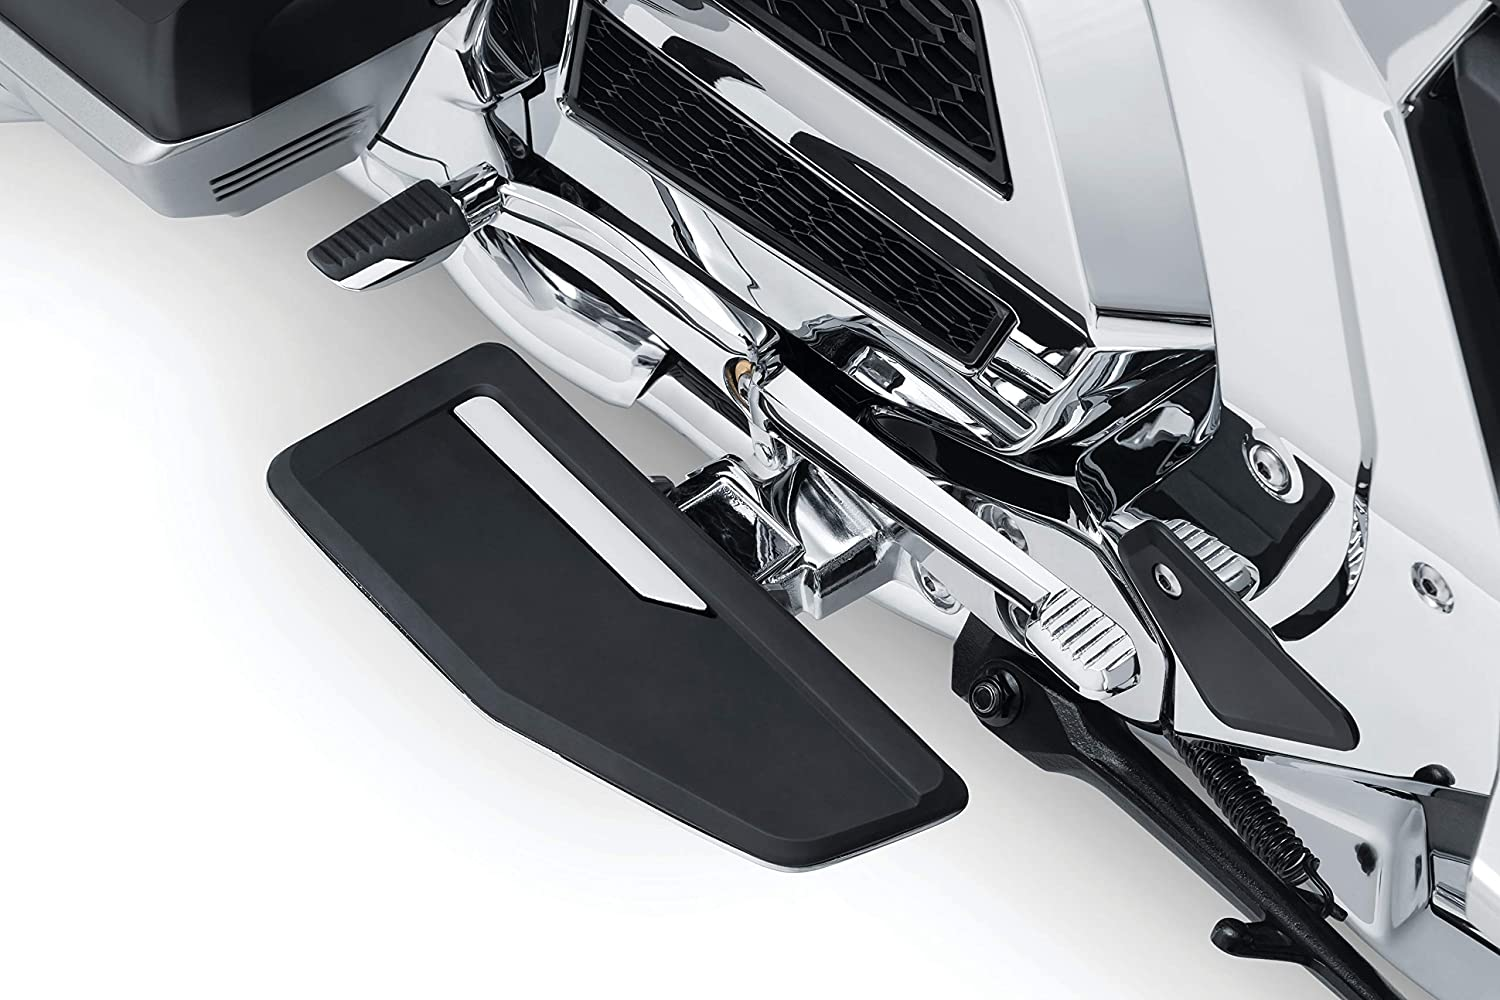 Omni Driver Floorboard Kit for 2018-20 Honda Gold Wing Motorcycles with Dual Clutch Transmission Kuryakyn 3283 Motorcycle Foot Control Component Satin Black 1 Pair